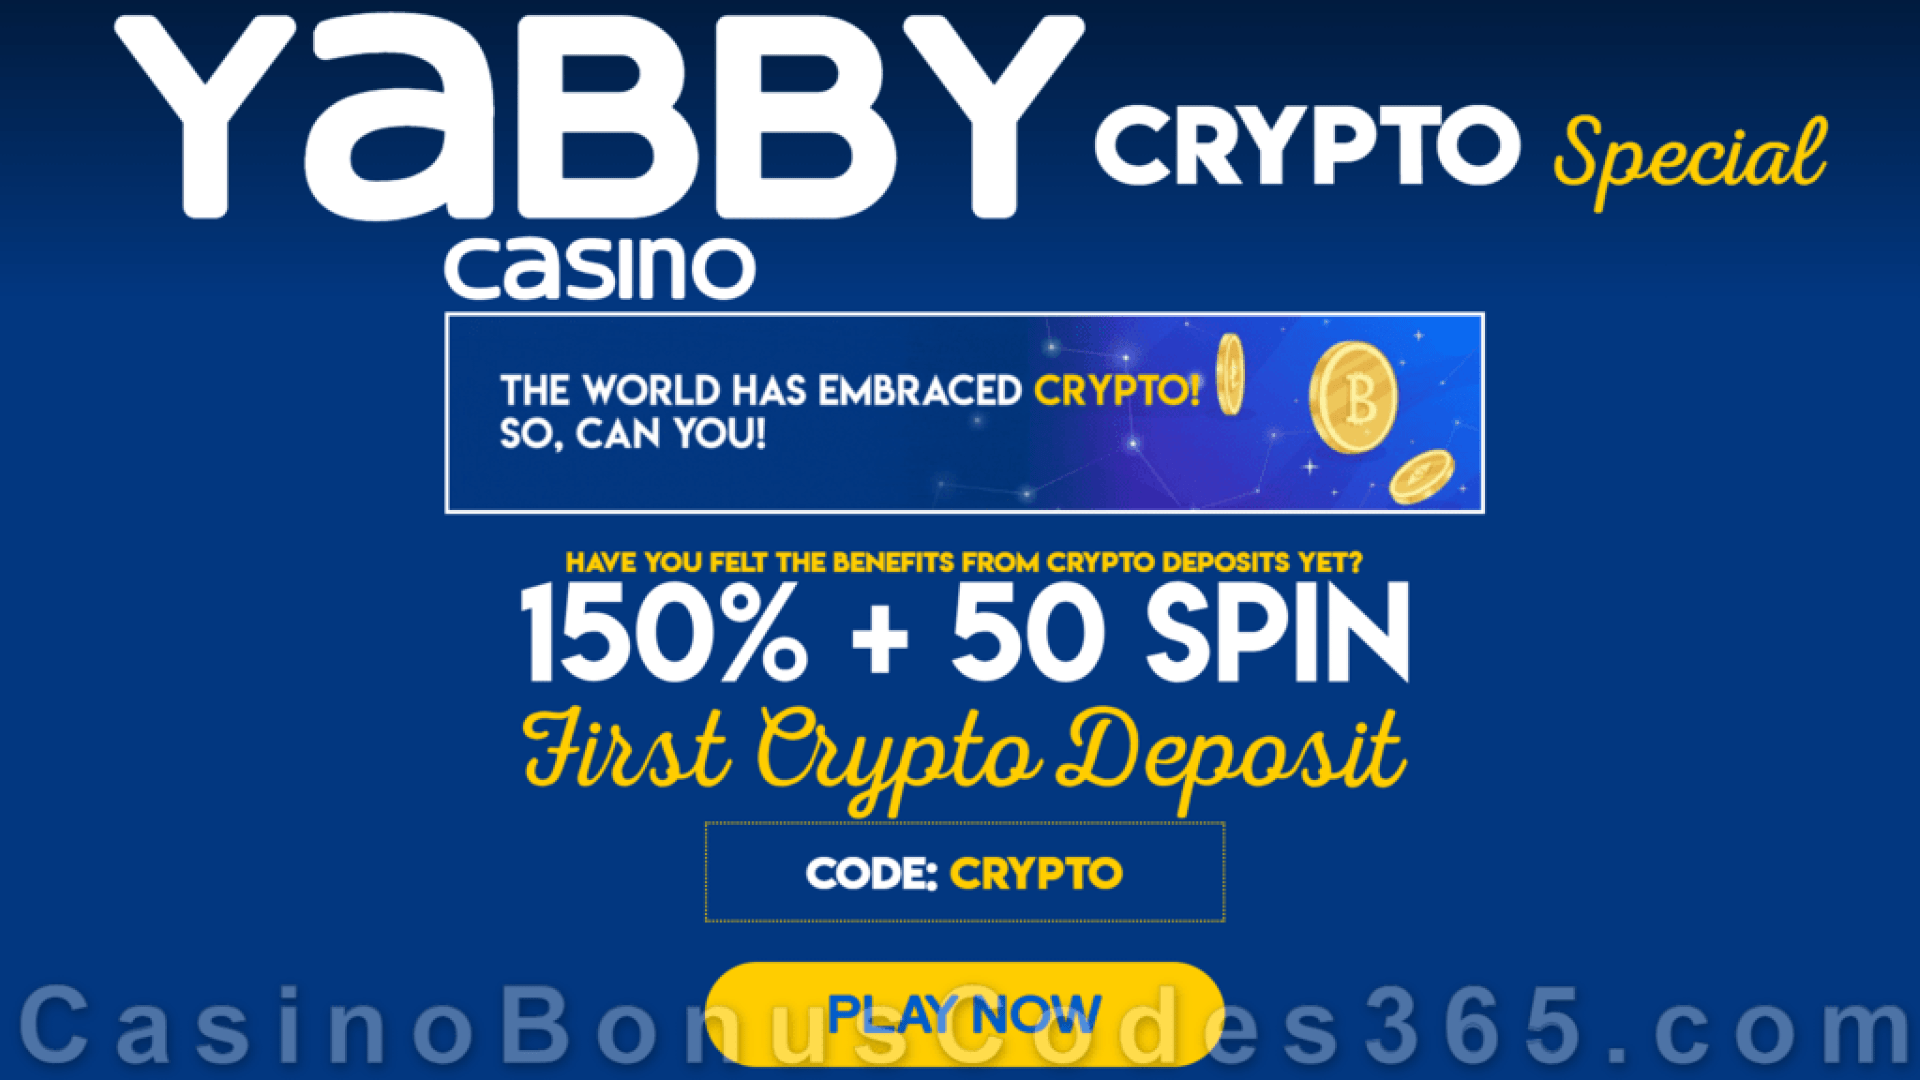 Yabby Casino 150% No Max plus 50 FREE Spins First Crypto Deposit Bonus